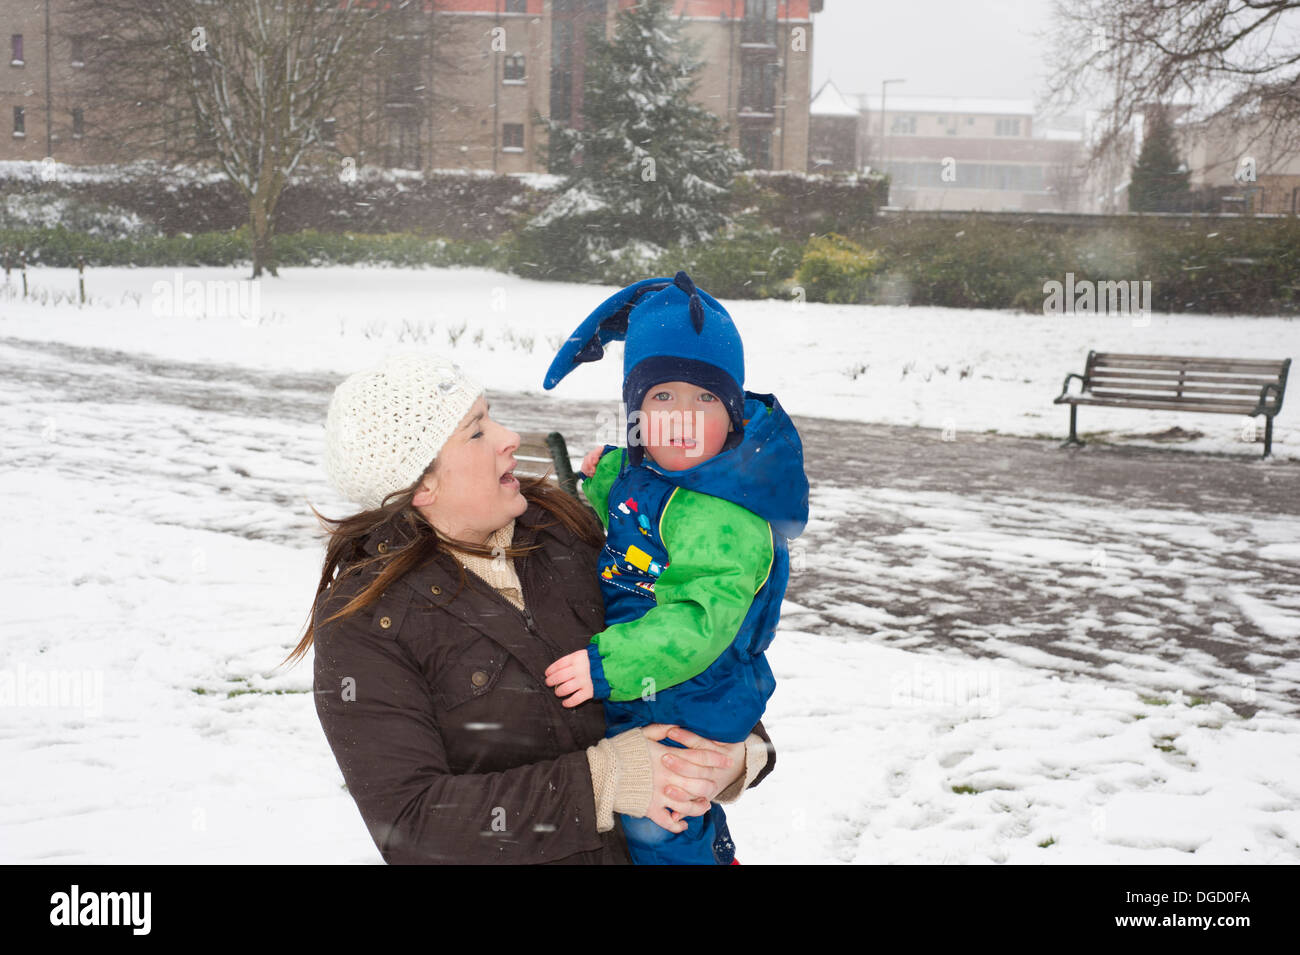 Mum and son in snow blizzard - Stock Image